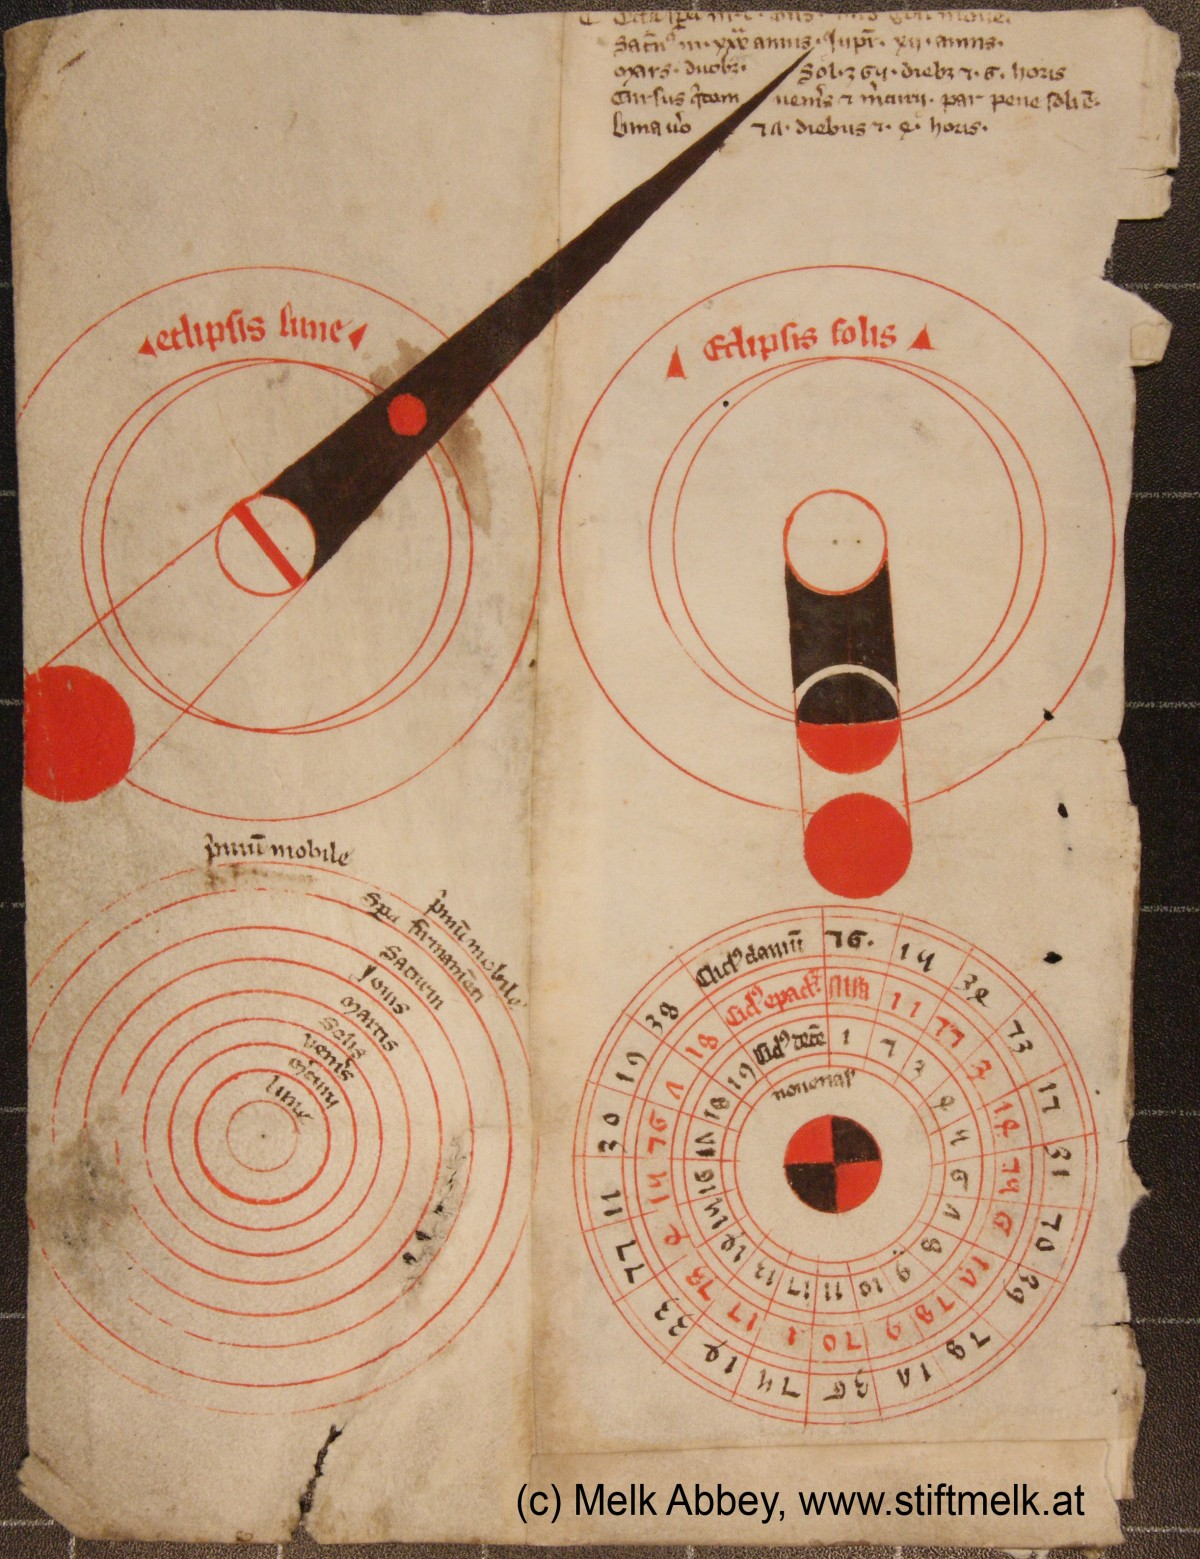 Medieval Astronomy from Melk Abbey. Credit: Paul Beck (Univ. Vienna), Georg Zotti (Vienna Inst. Arch. Science). Copyright: Library of Melk Abbey, Frag. 229